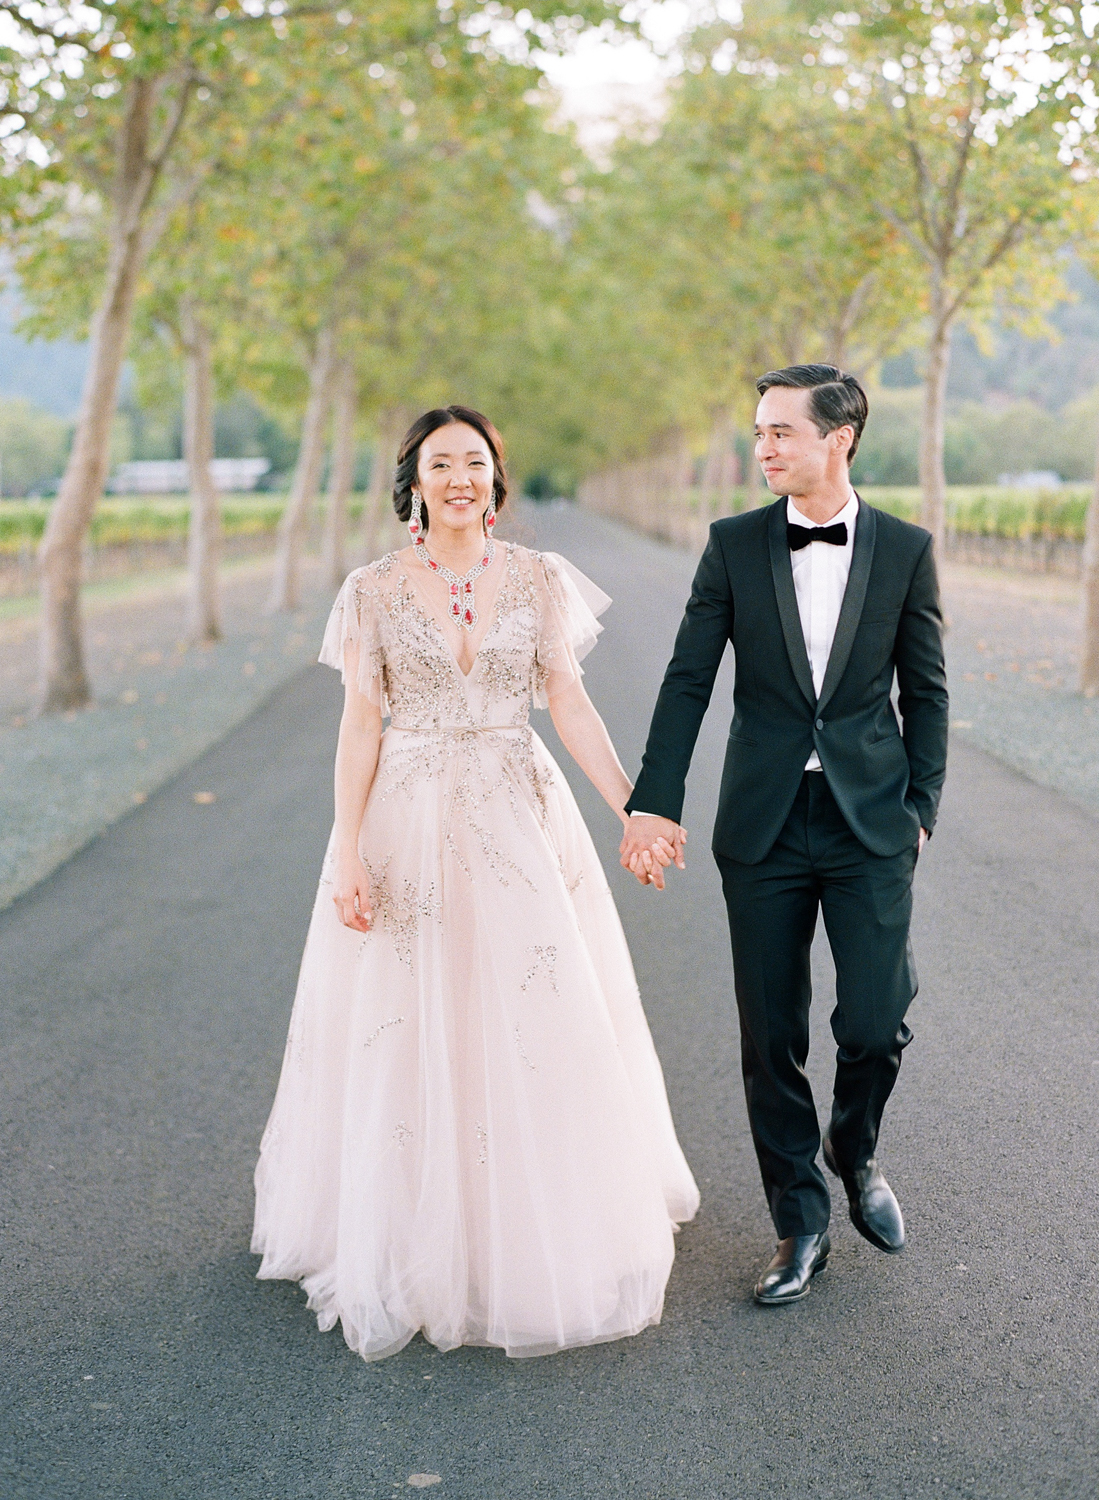 bride and groom hold hands smiling on paved walkway